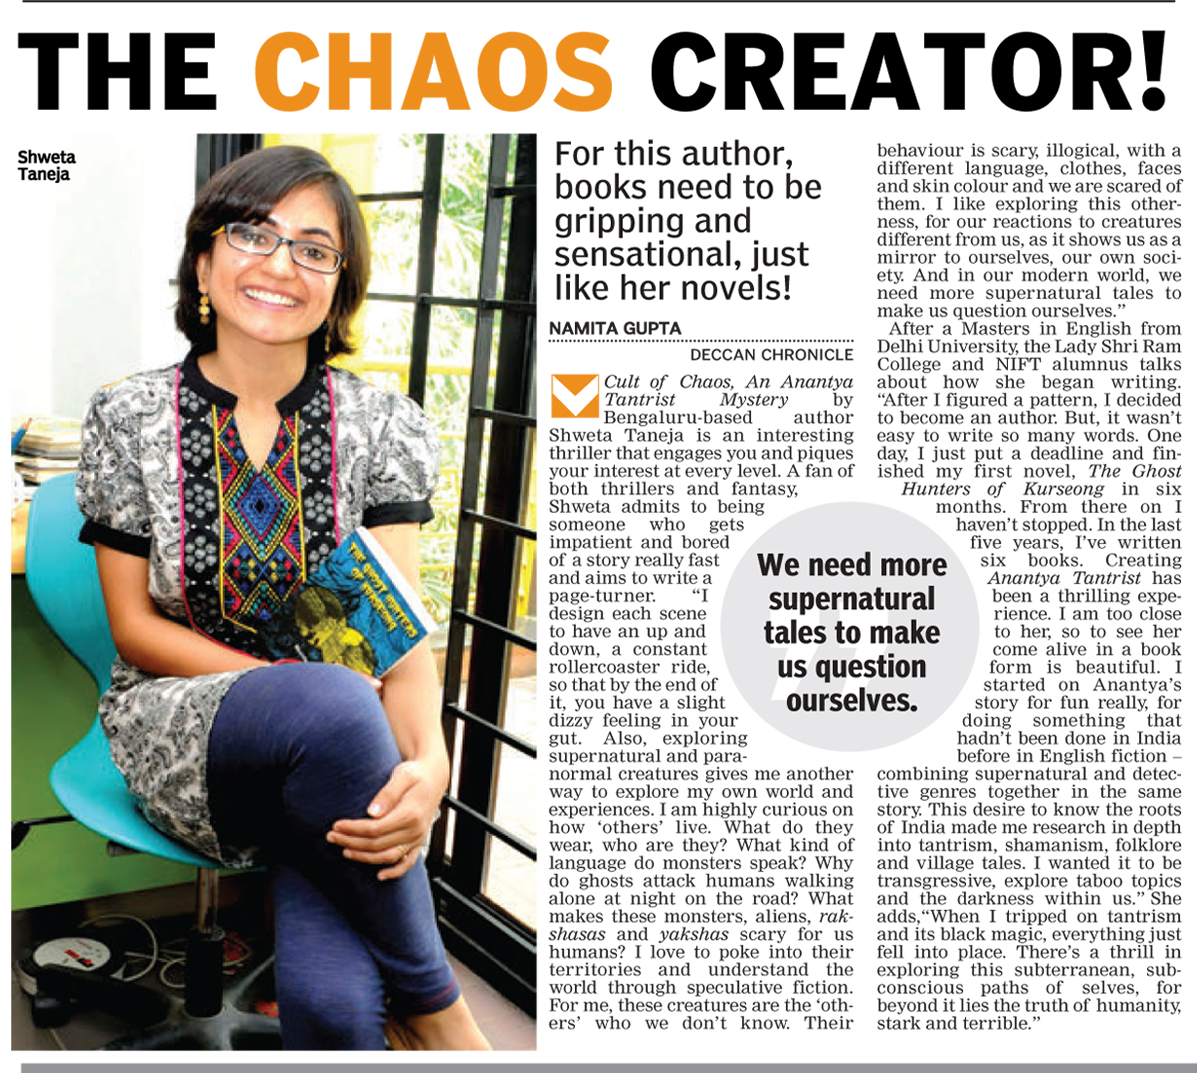 Interview in Deccan Chronicle